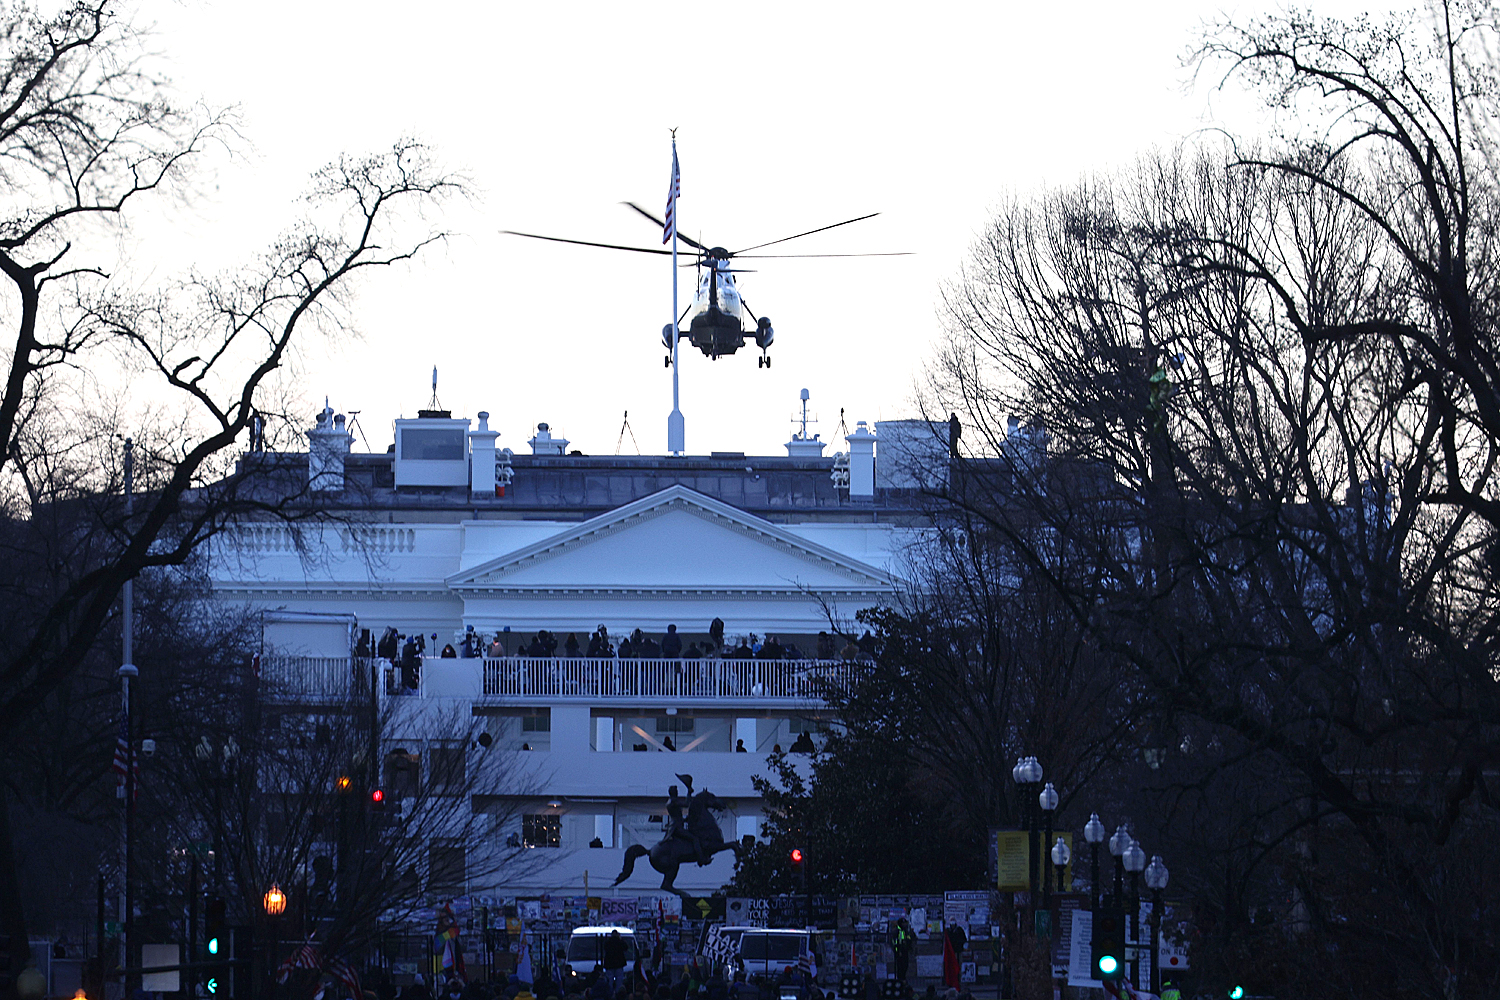 Marine One leaves the White House with US President Donald J. Trump and US First Lady Melania Trump on board